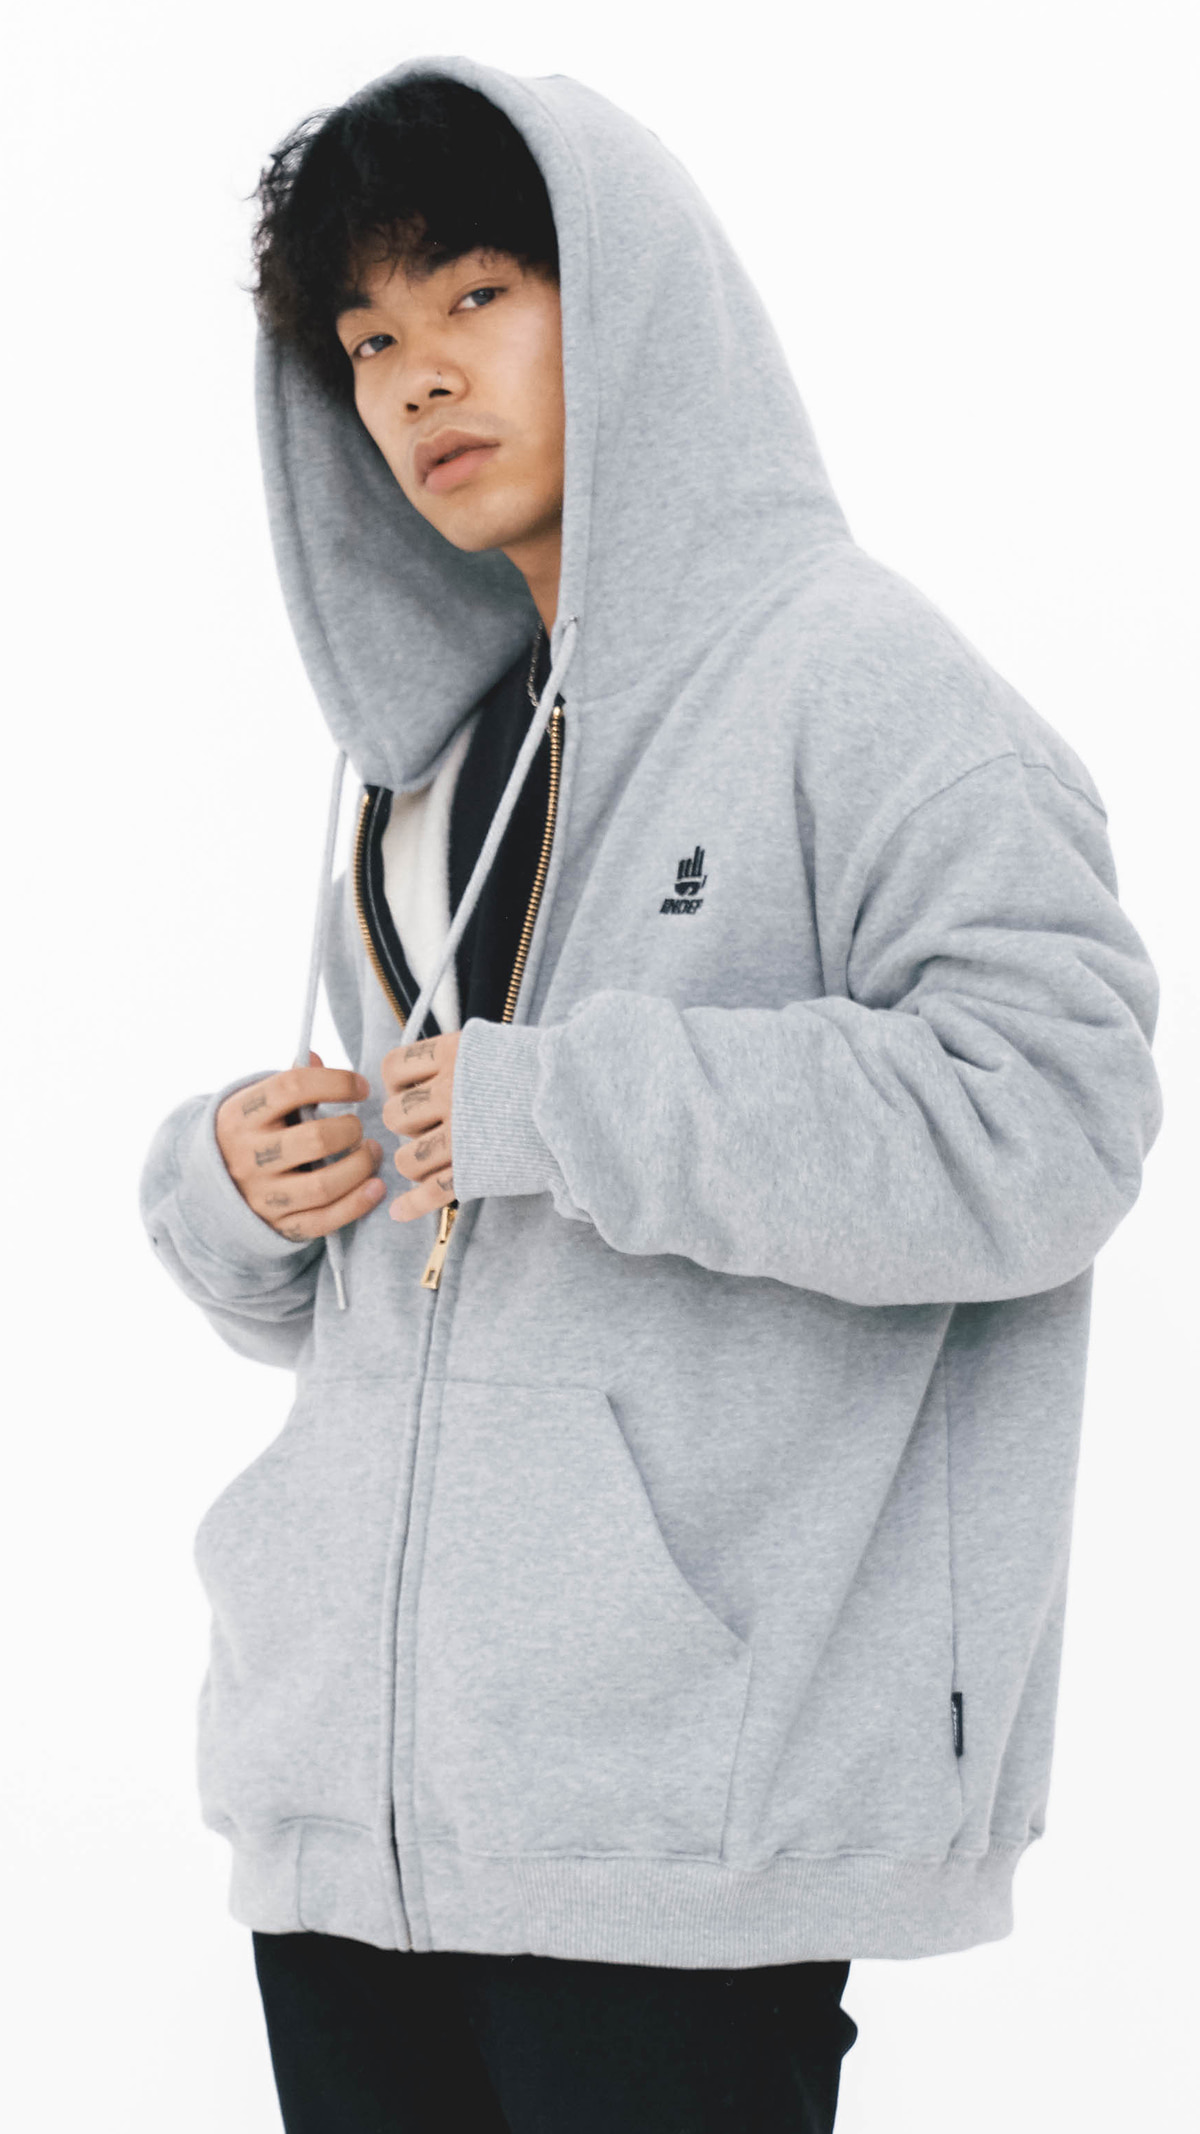 Indep Symbol Hooded Zip_GR